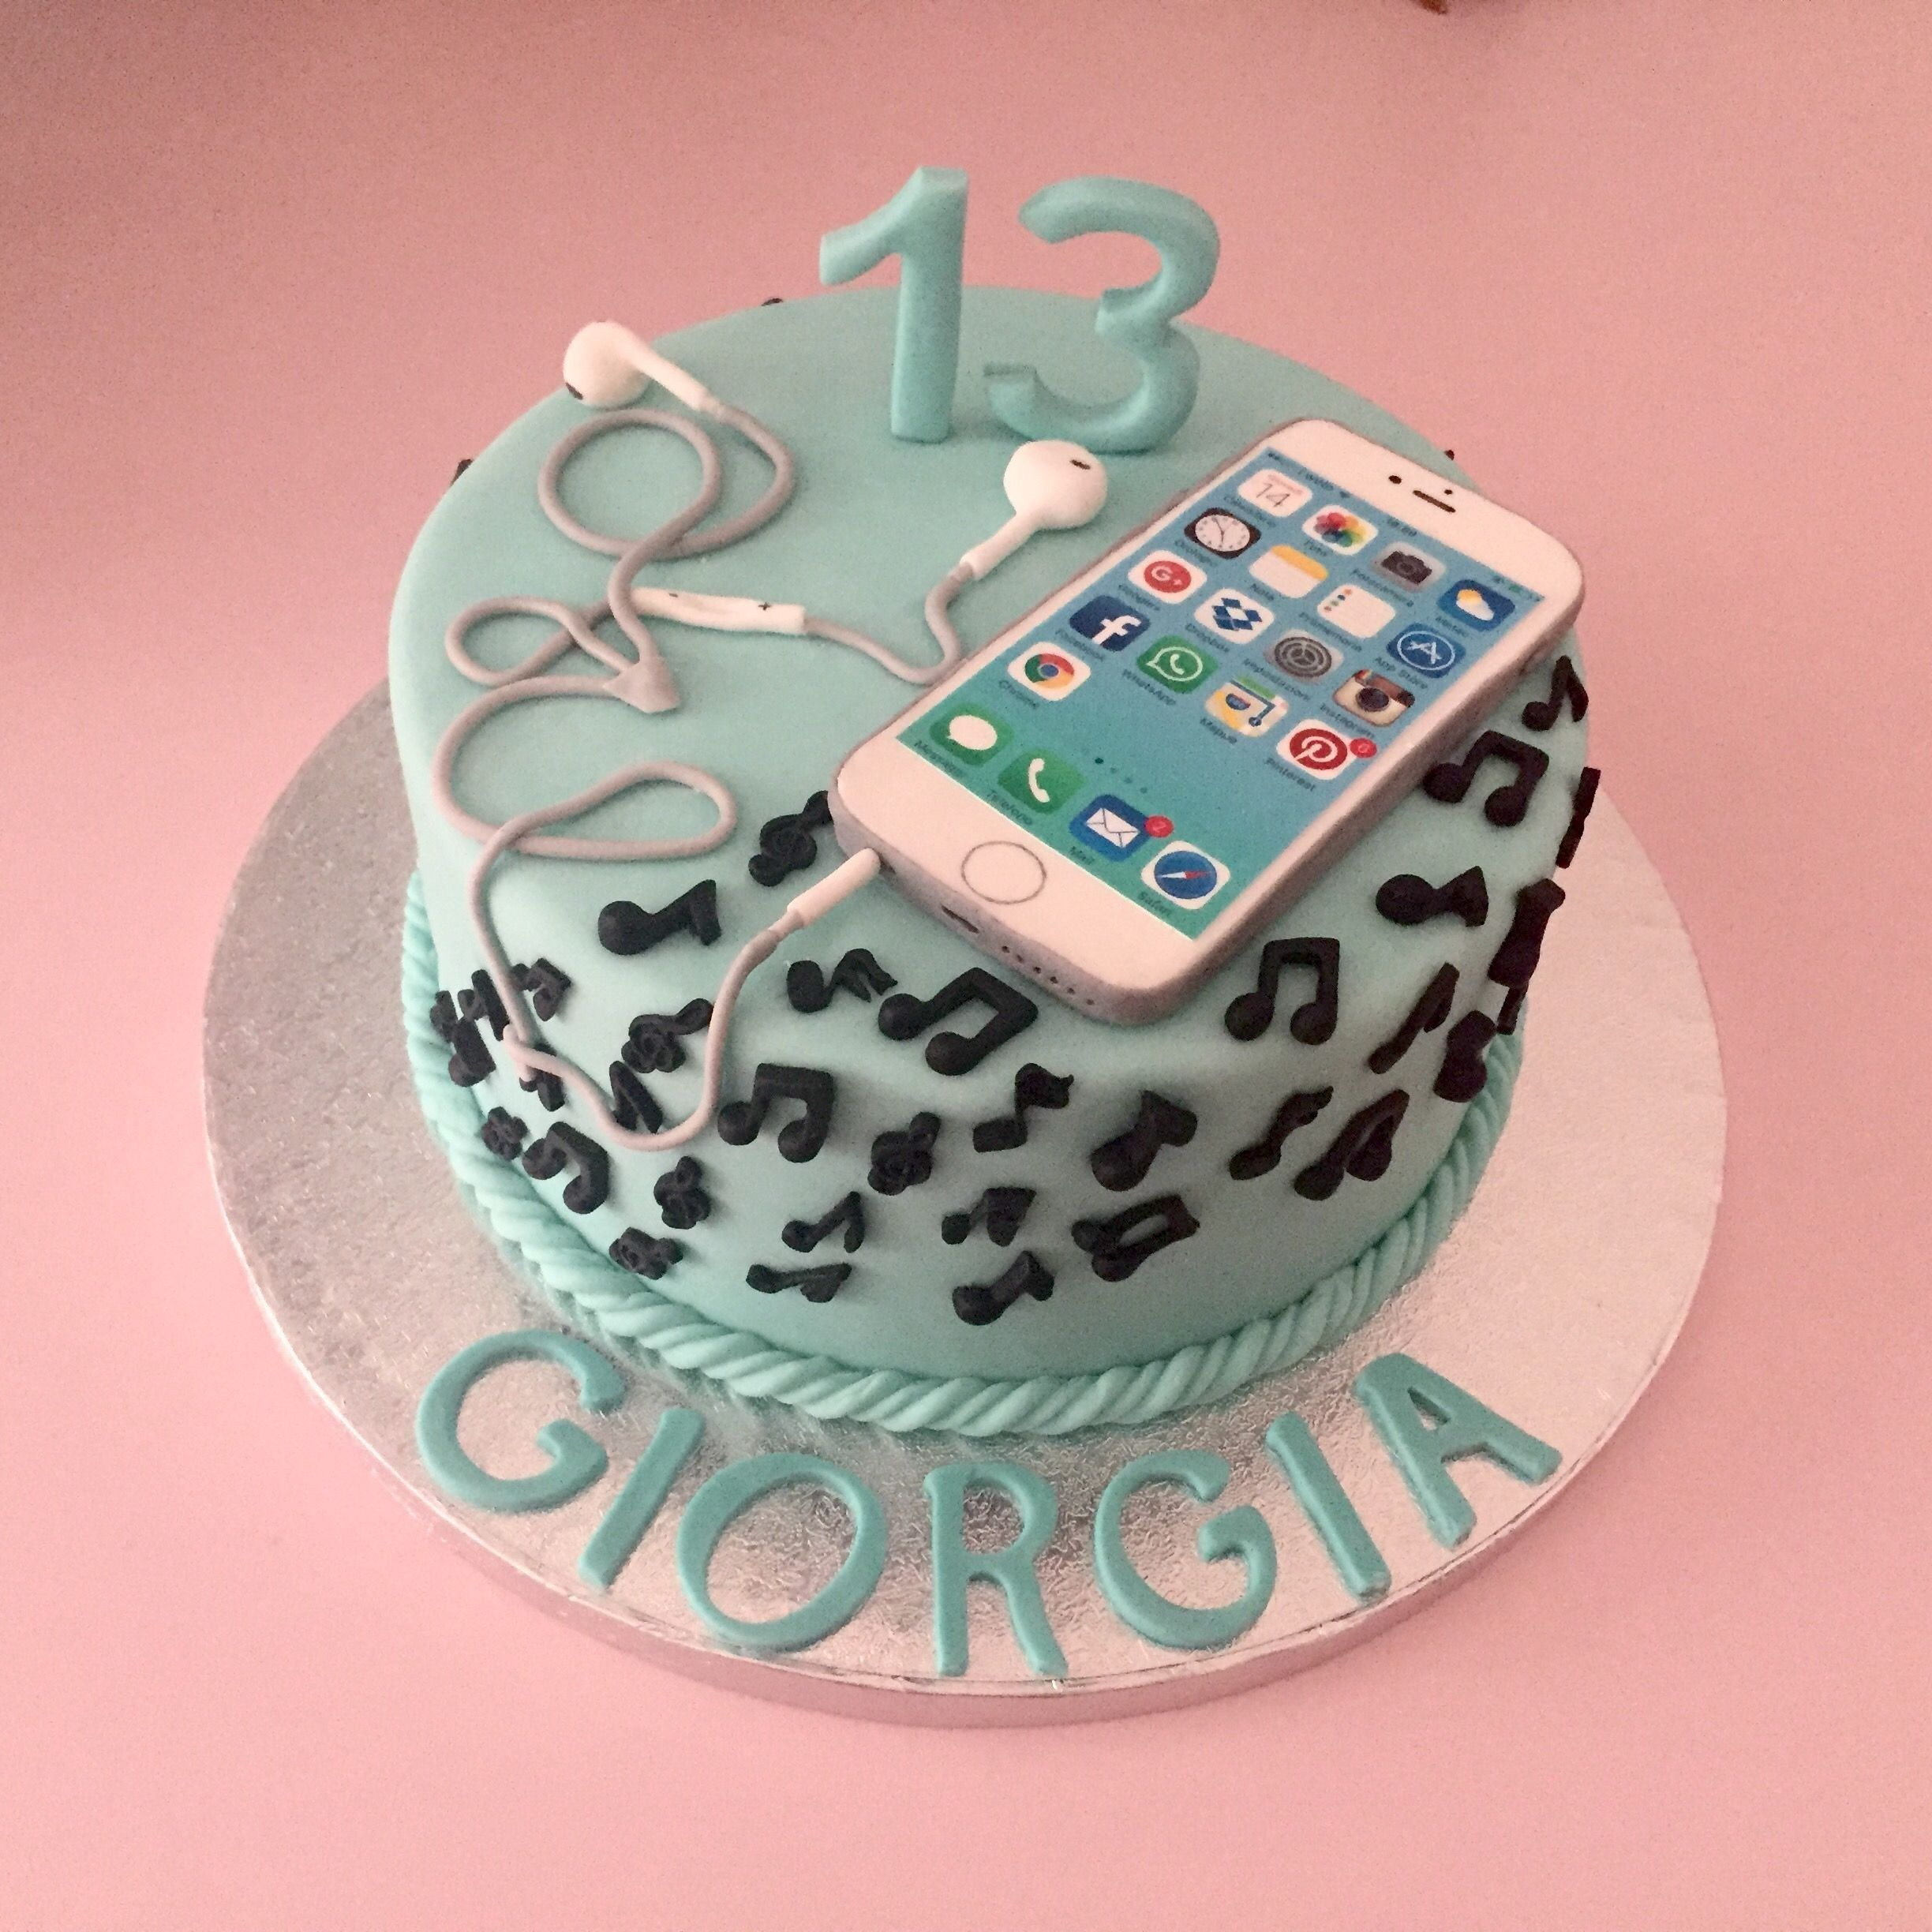 Pleasing 25 Awesome Photo Of Teenage Girl Birthday Cakes Tiener Taarten Funny Birthday Cards Online Barepcheapnameinfo